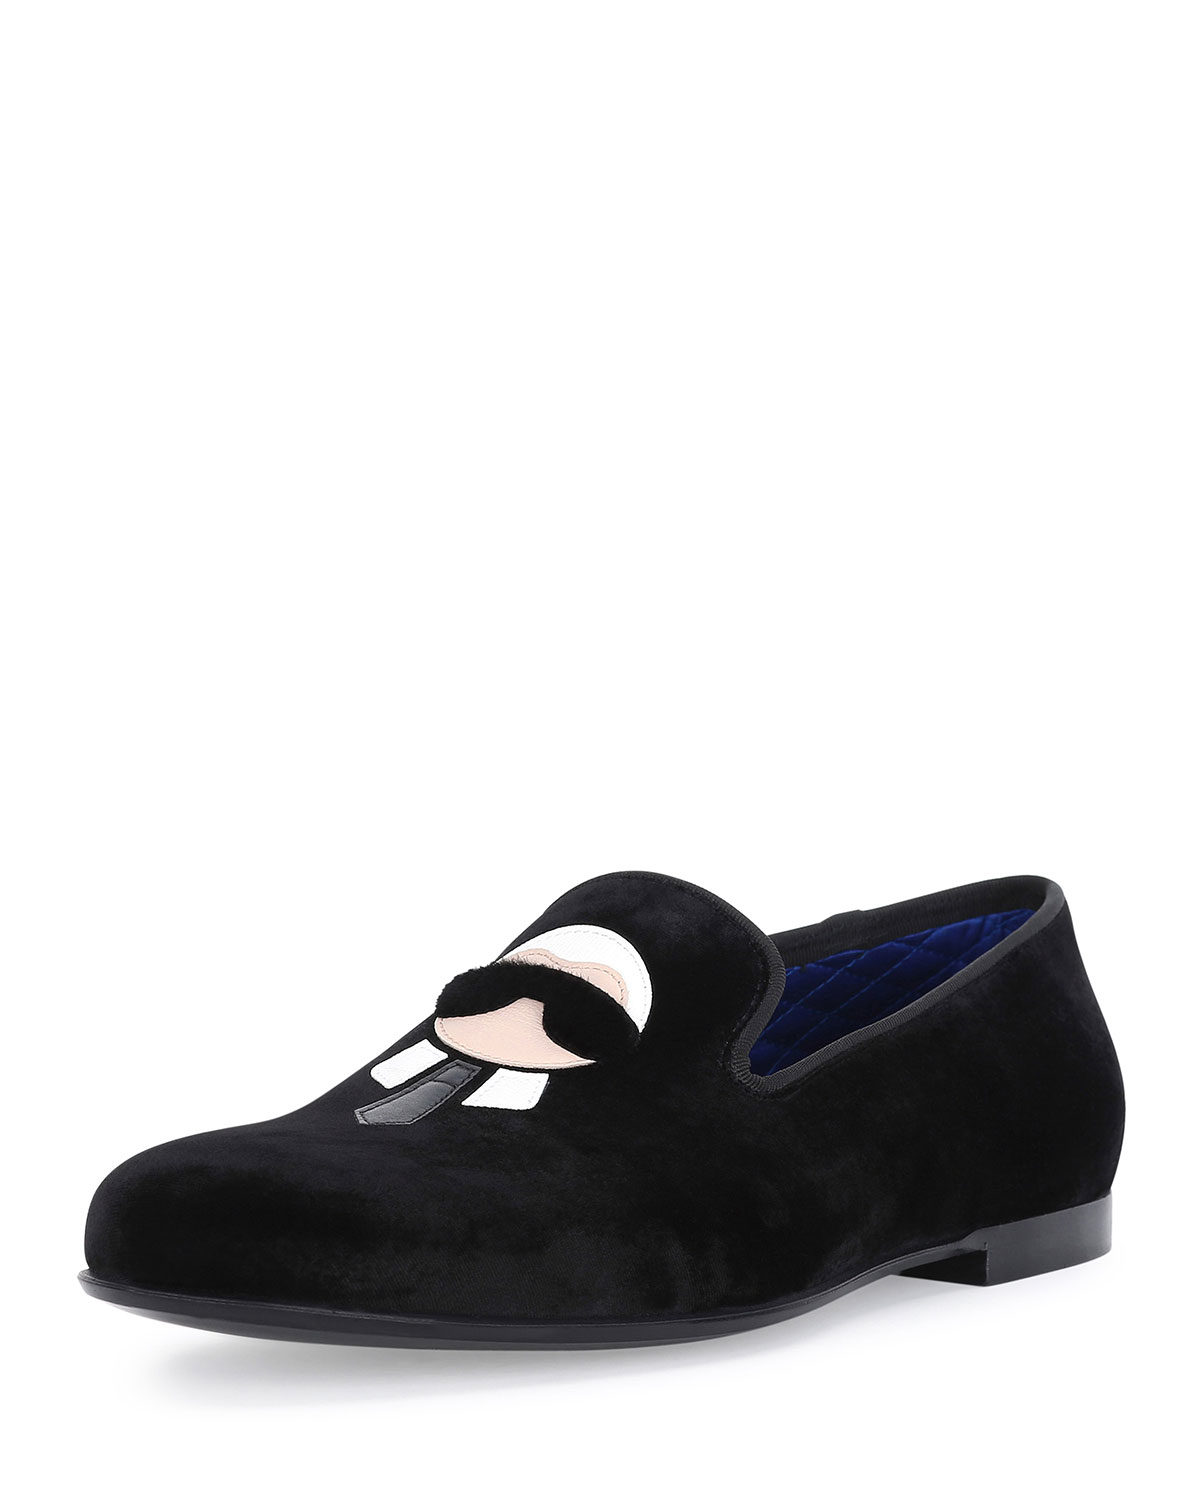 Fendi Karlito Formal Evening Slipper In Black For Men Lyst